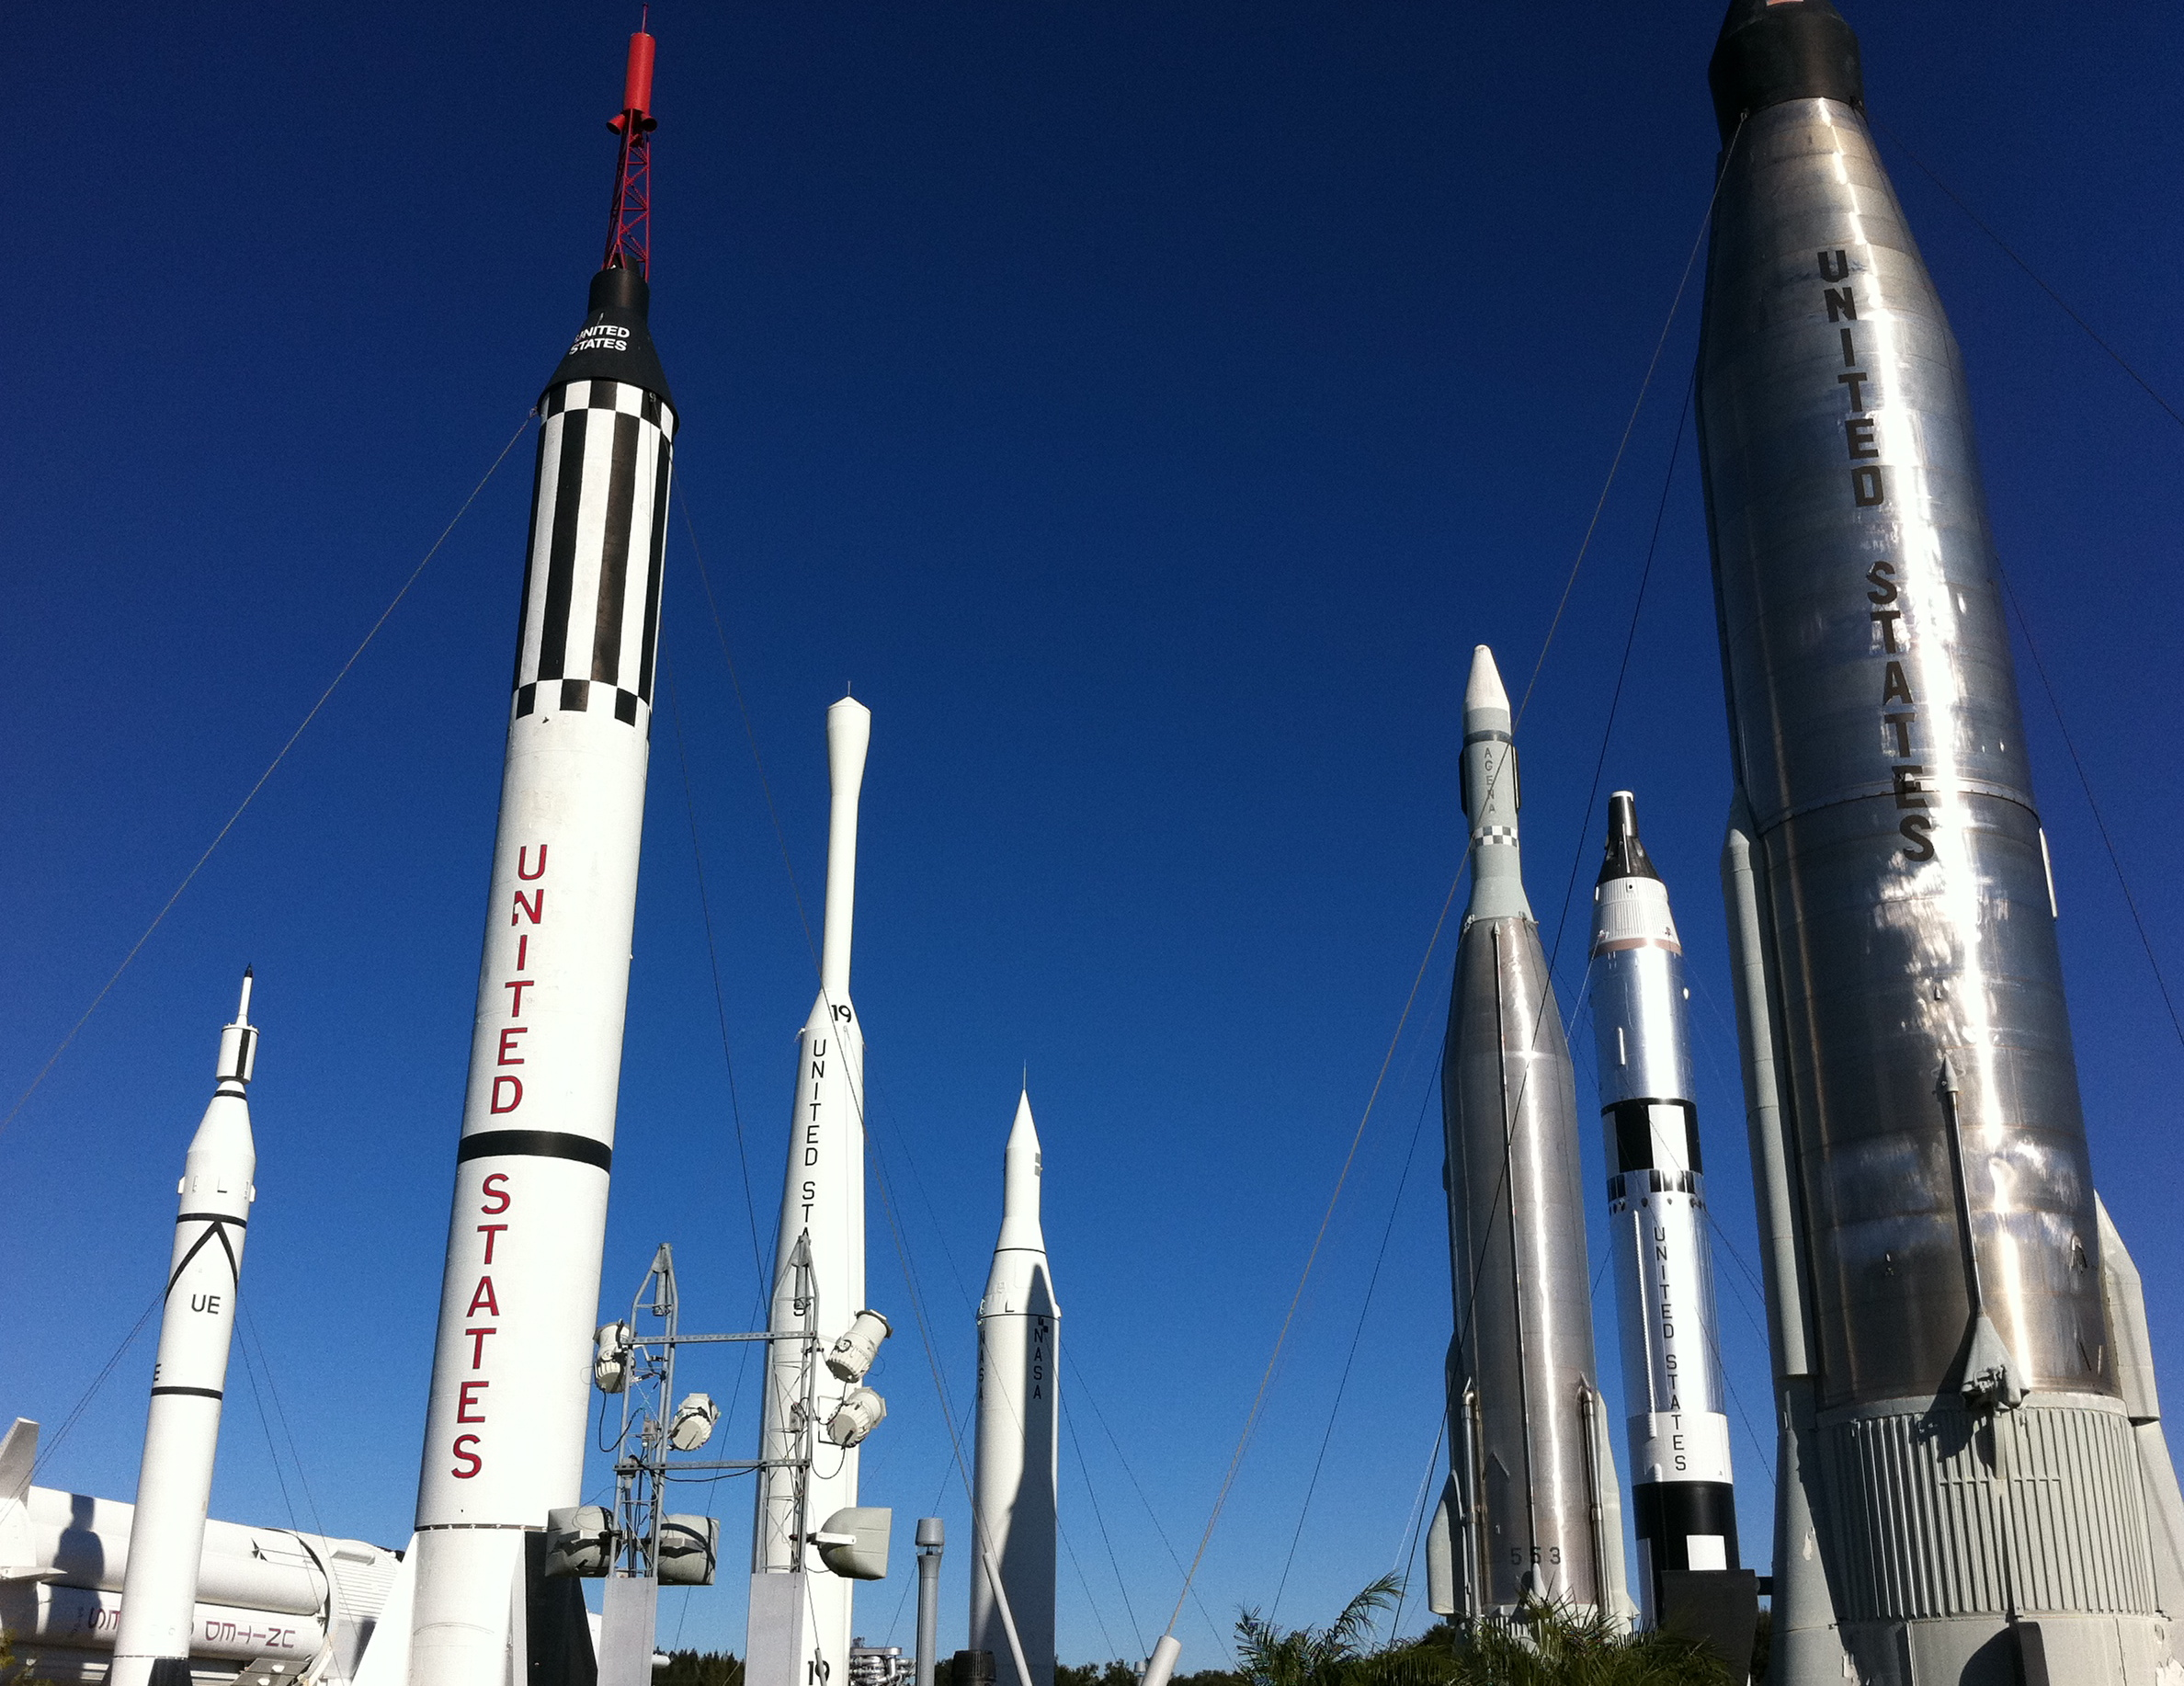 rocket garden kennedy space center - photo #9